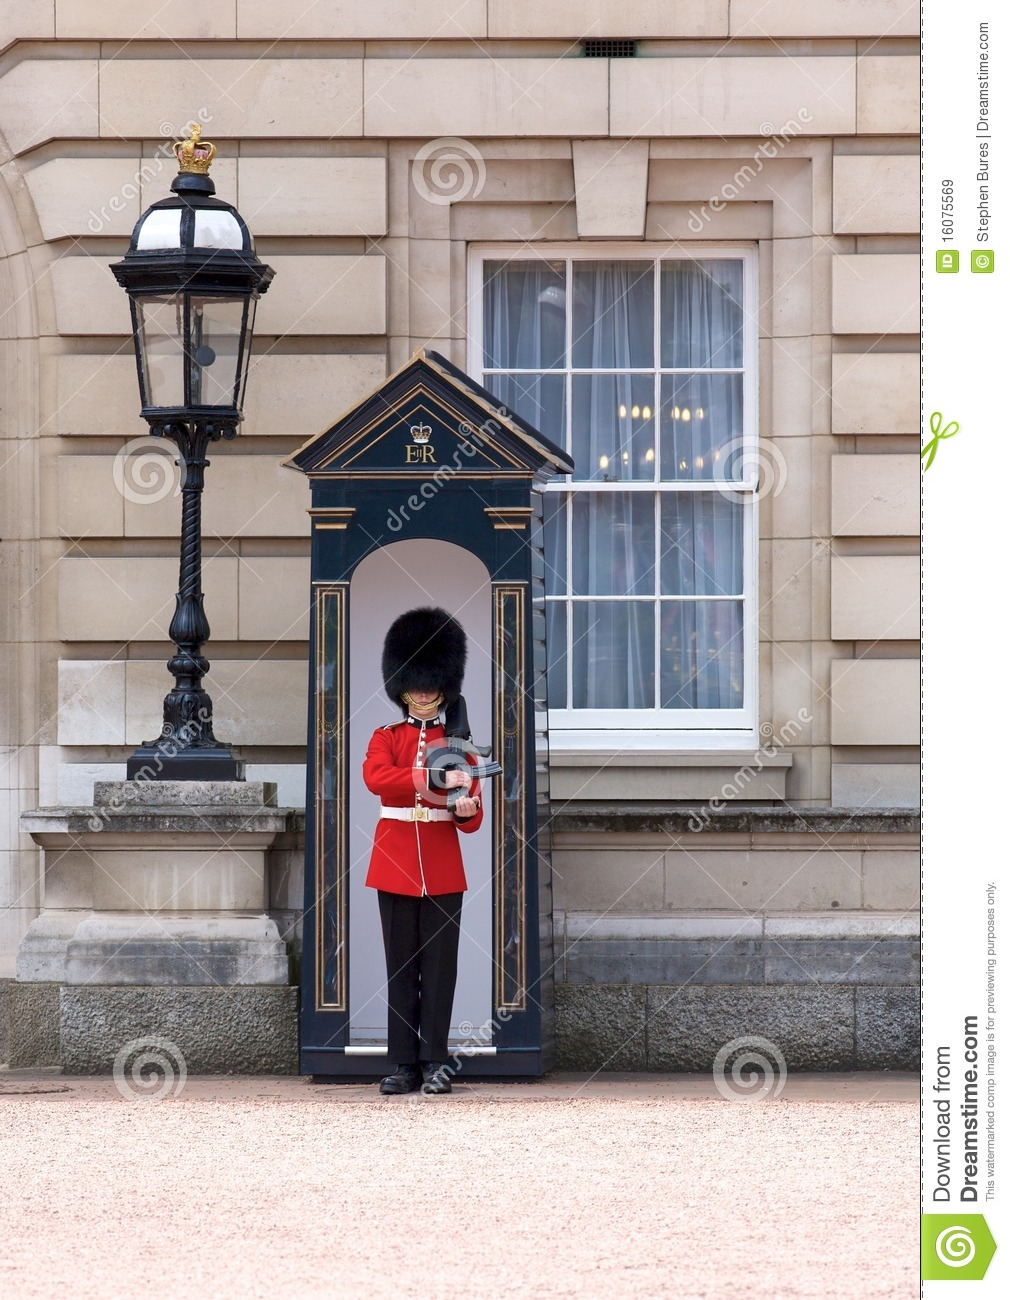 Royal Guards clipart Palace clipart Buckingham Guard collection